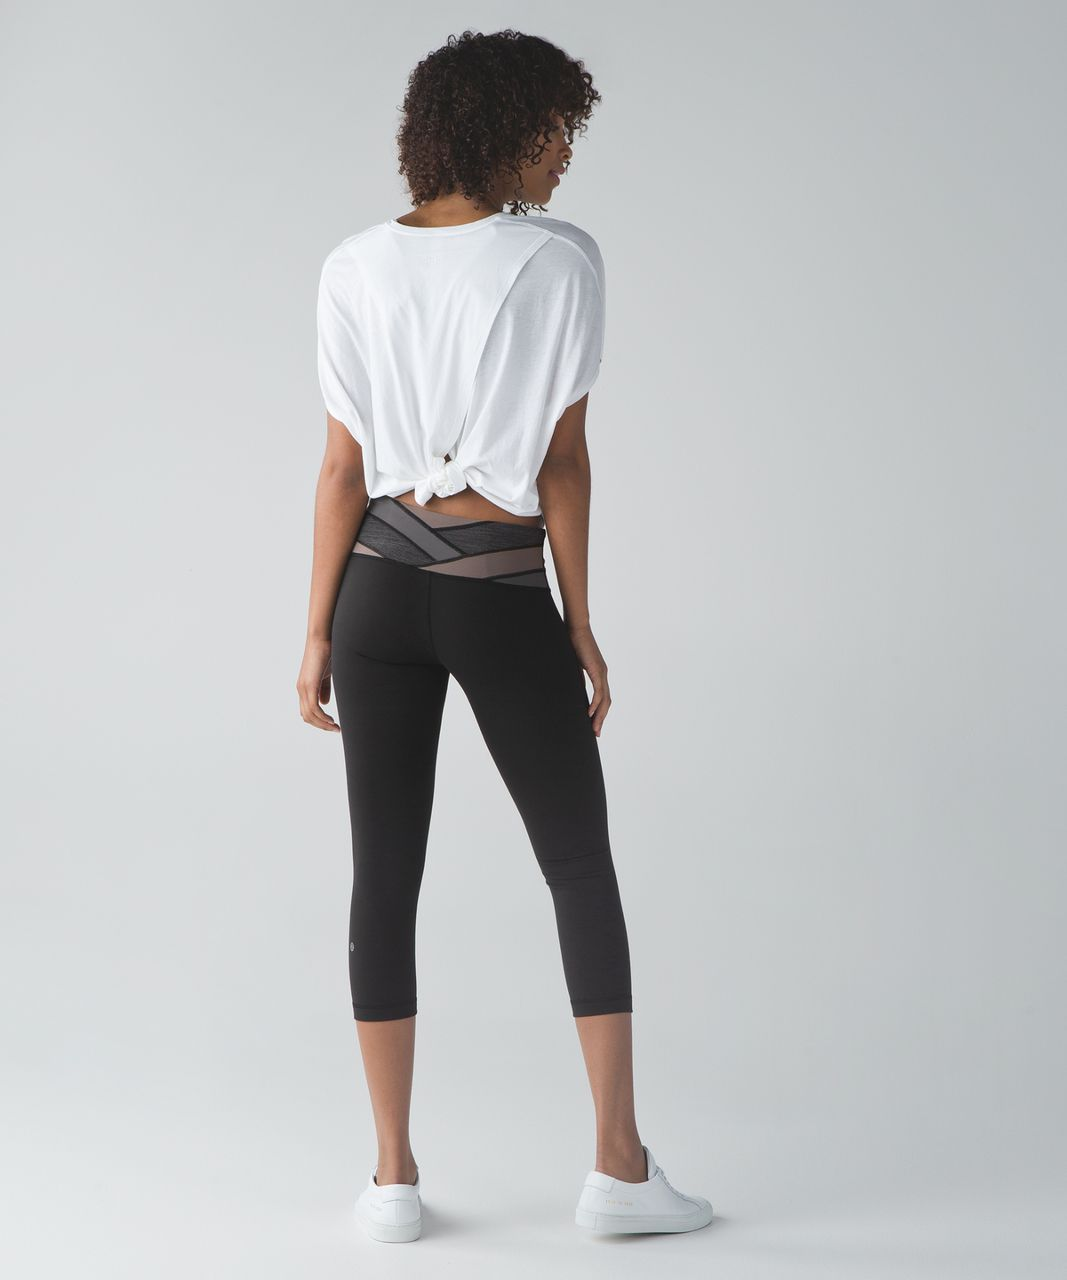 Lululemon Wunder Under Crop III - Black / Wee Are From Space Cool Cocoa Soot Light / Cool Cocoa